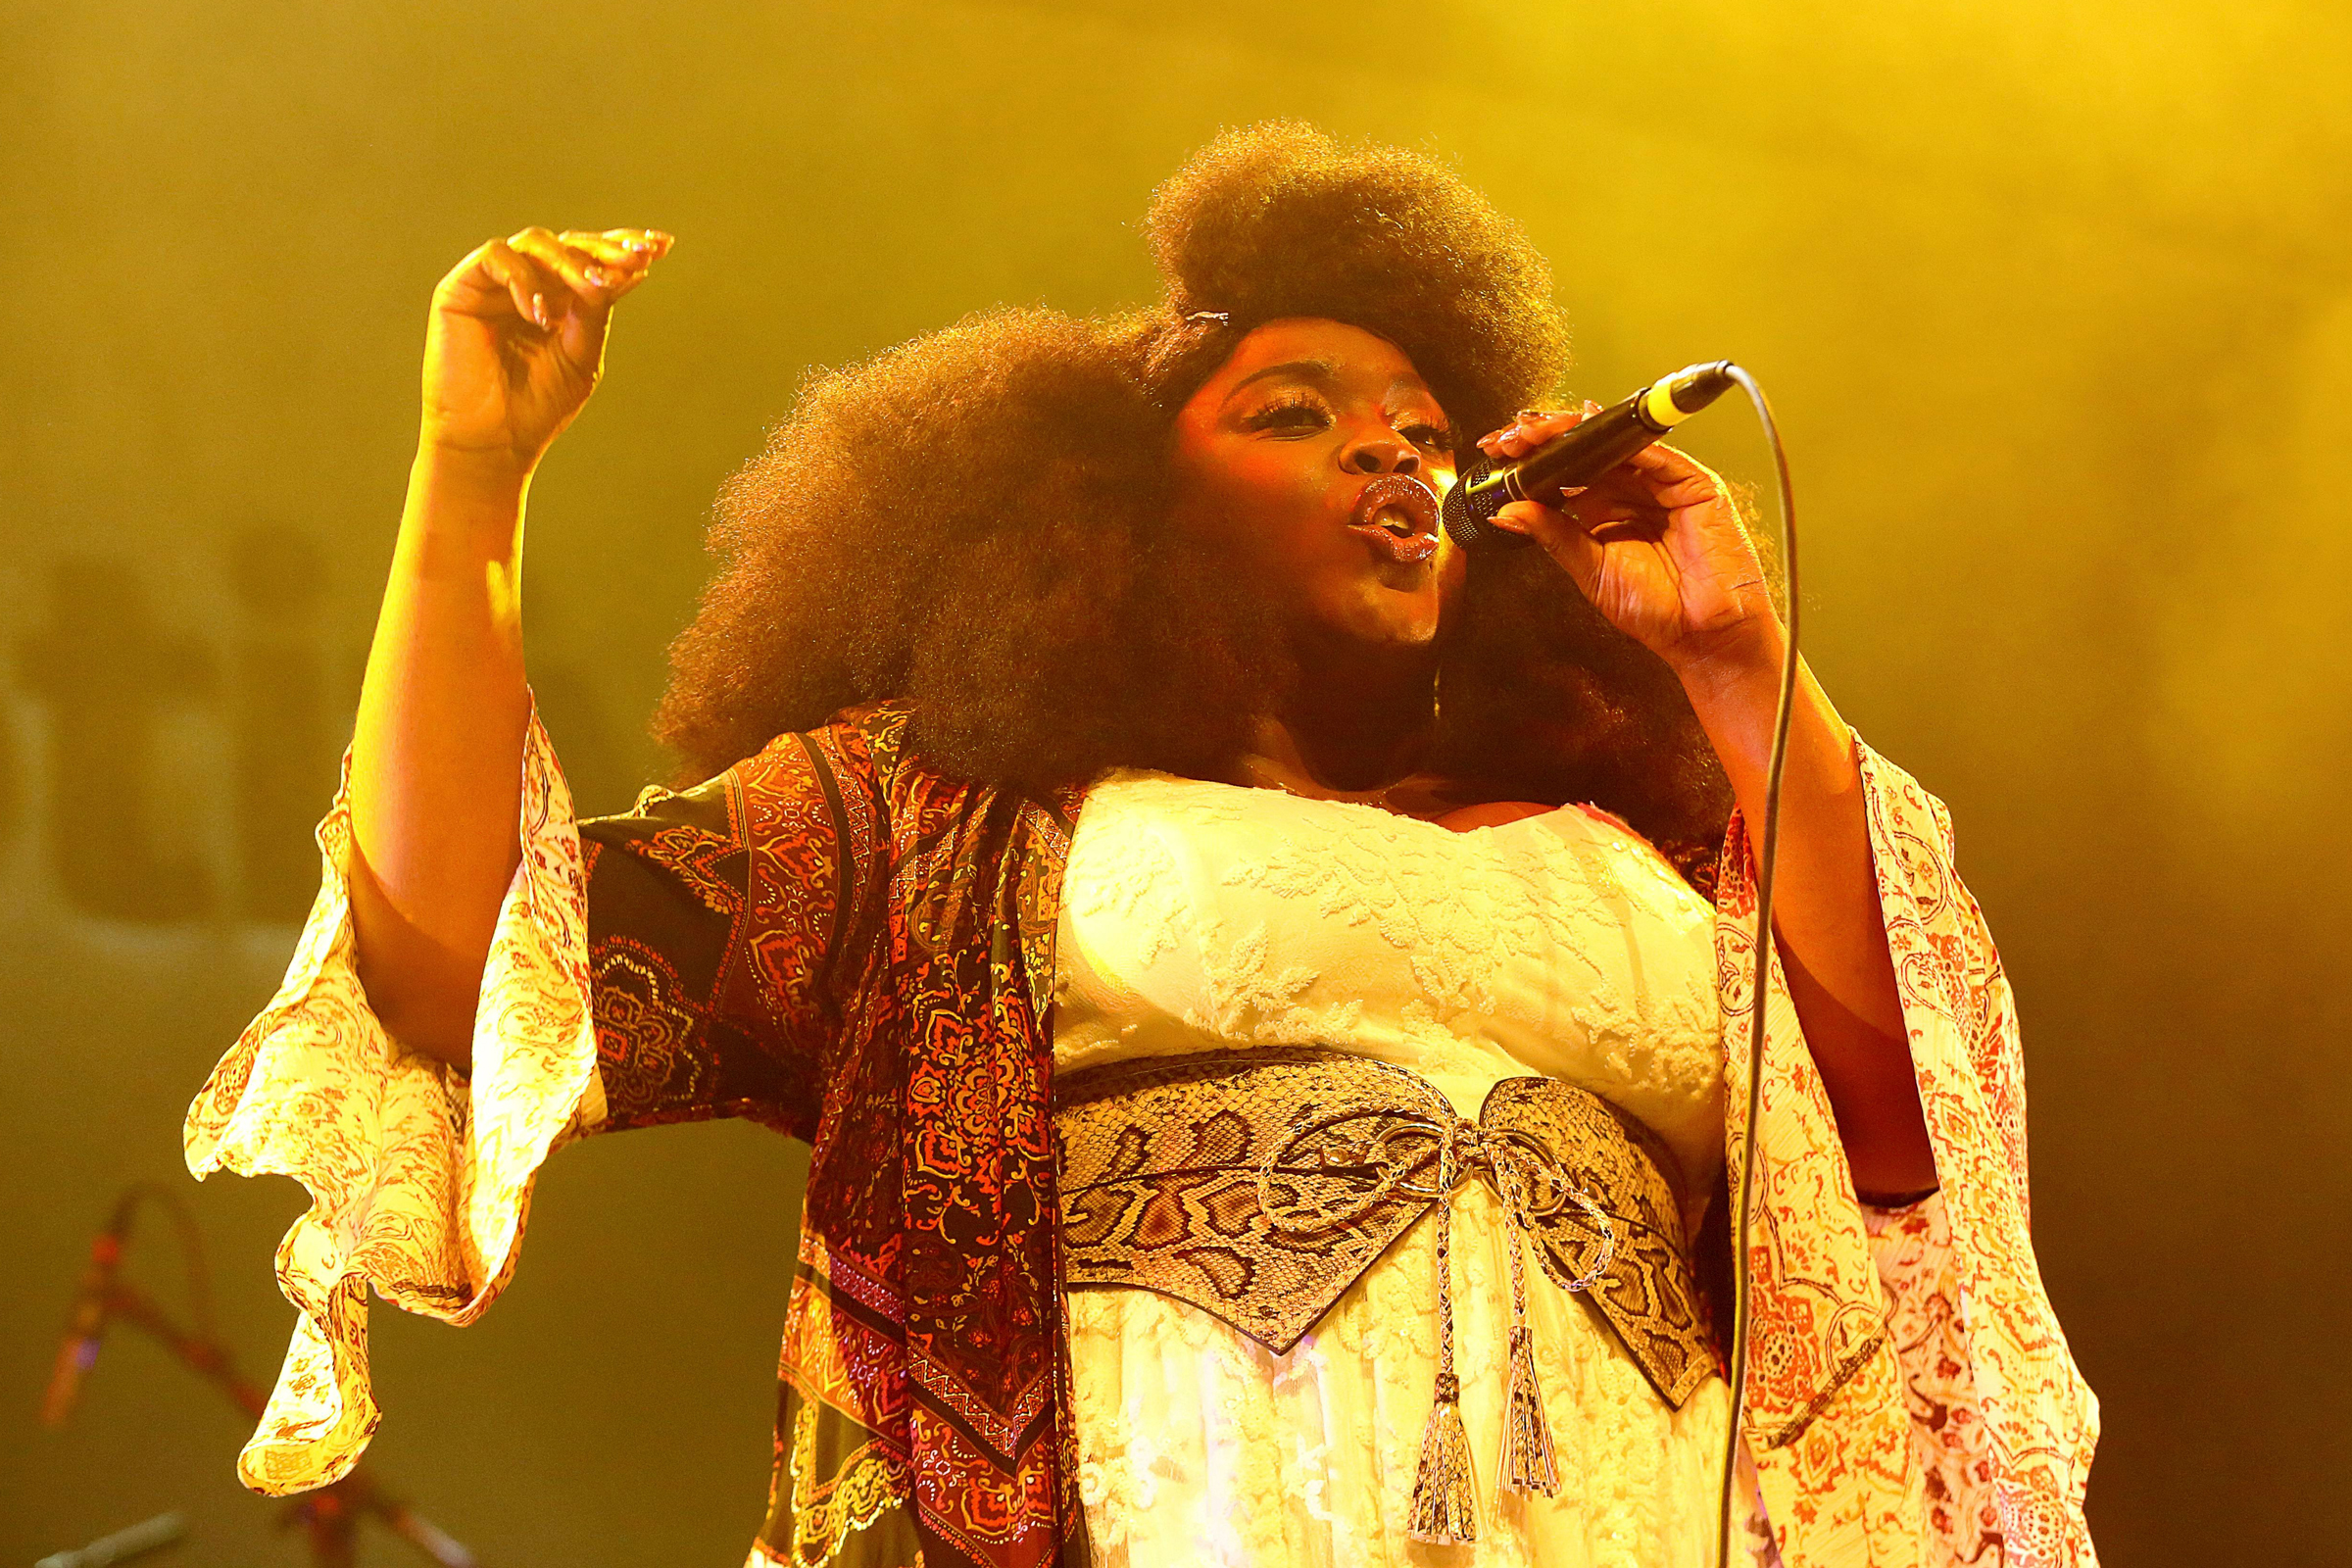 Yola Set to Play Sister Rosetta Tharpe in Baz Luhrmann's 'Elvis'